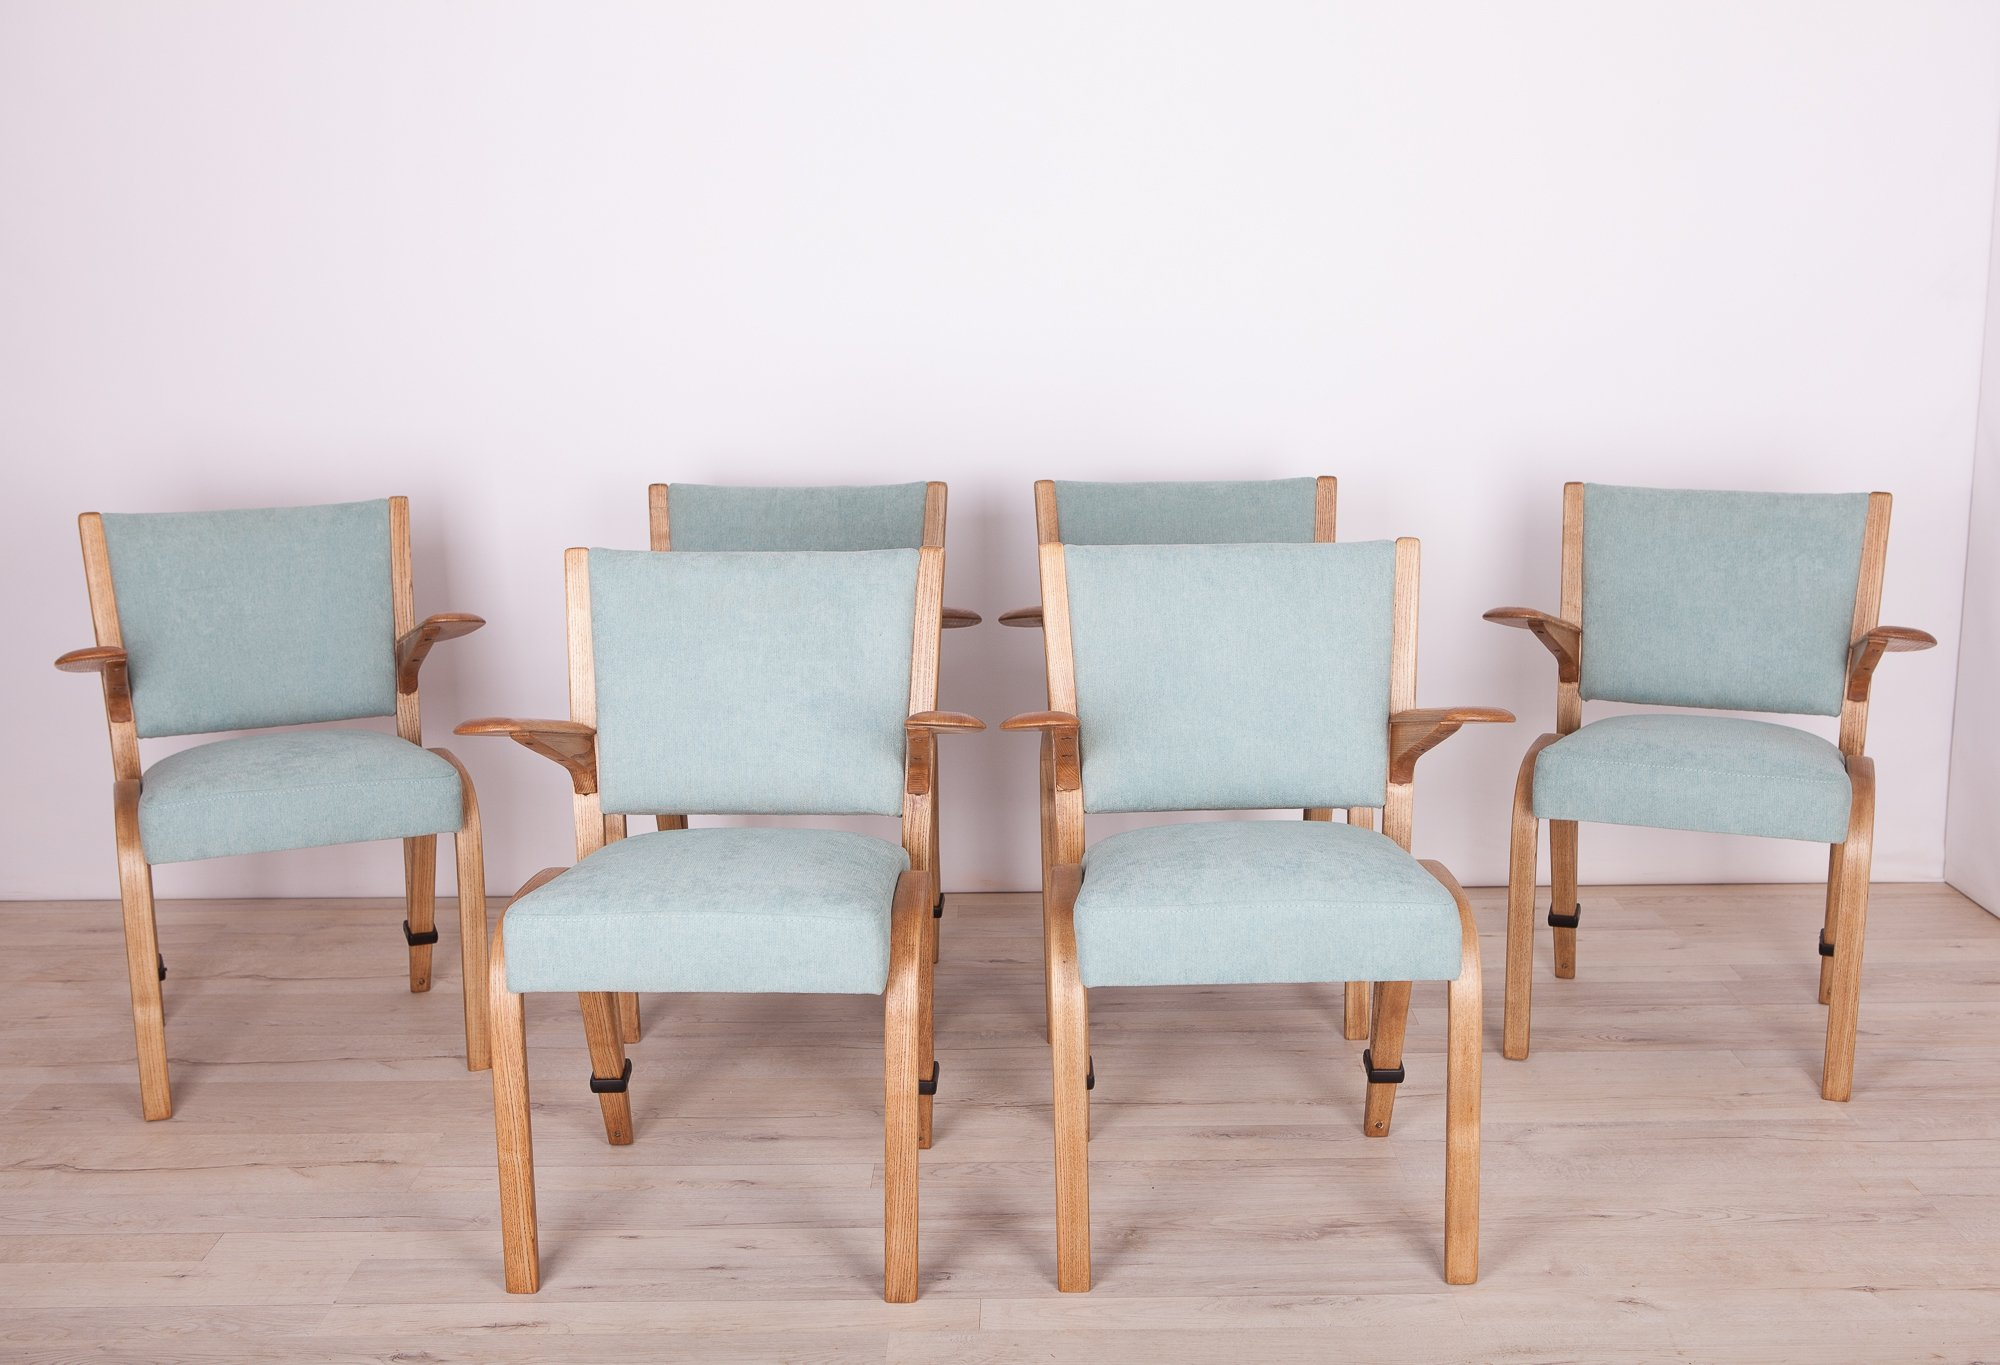 Set Of 6 Vintage French Oak Dining Chairs By Hugues Steiner For Steiner 1960s 116091